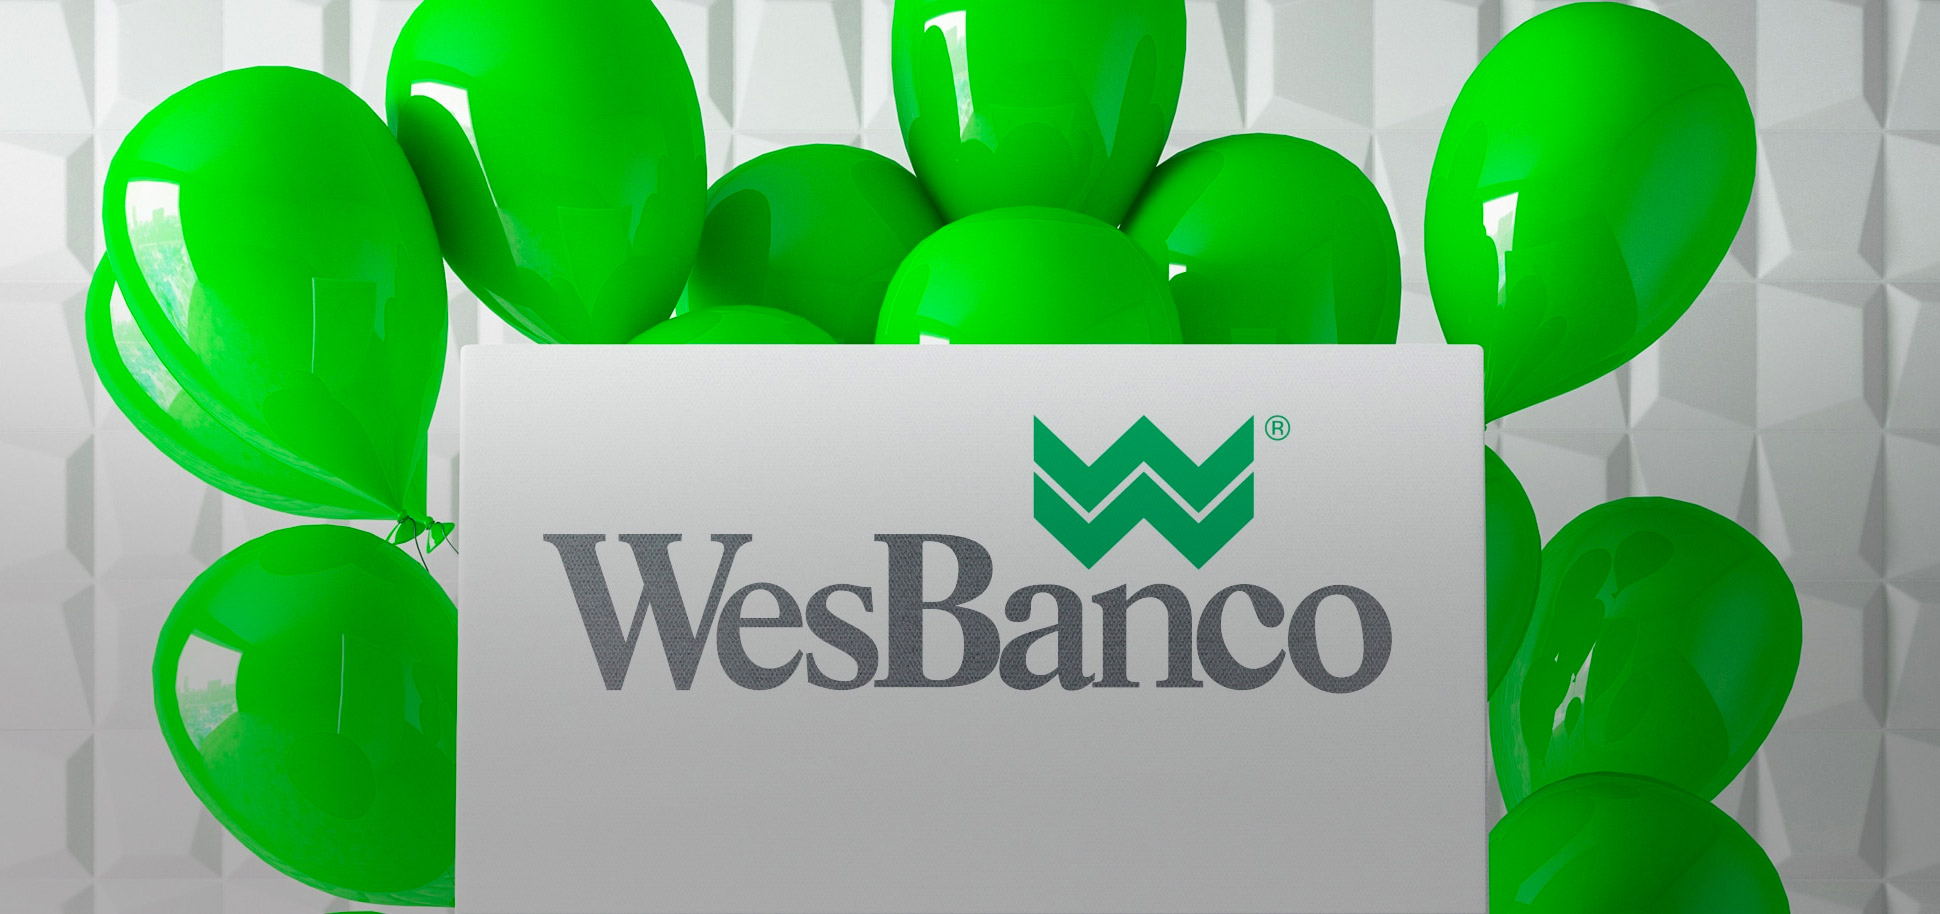 WesBanco logo with balloons